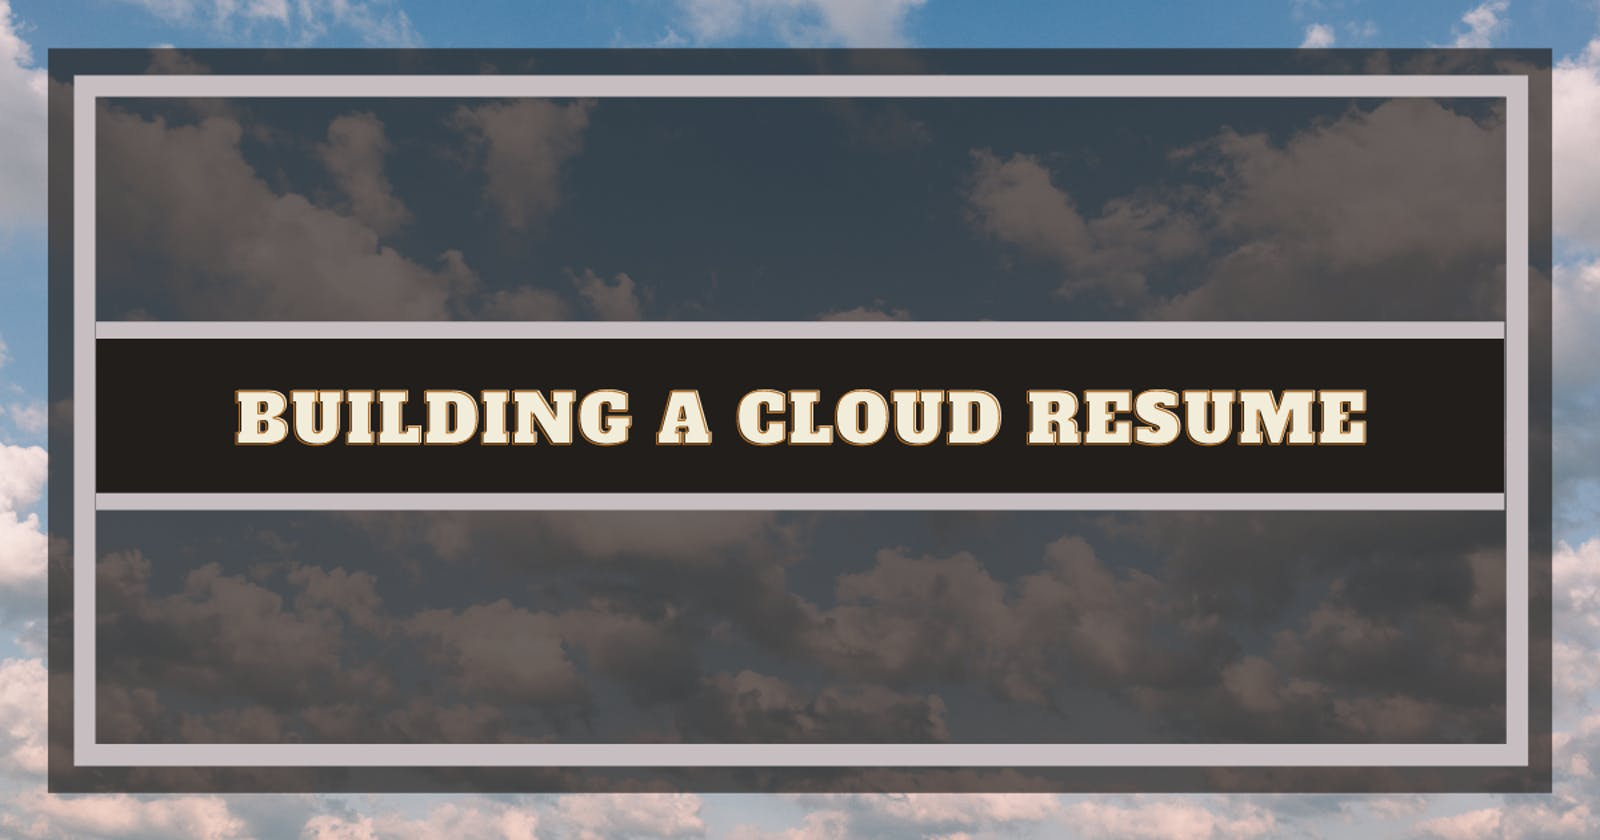 My Experience with the Cloud Resume Challenge